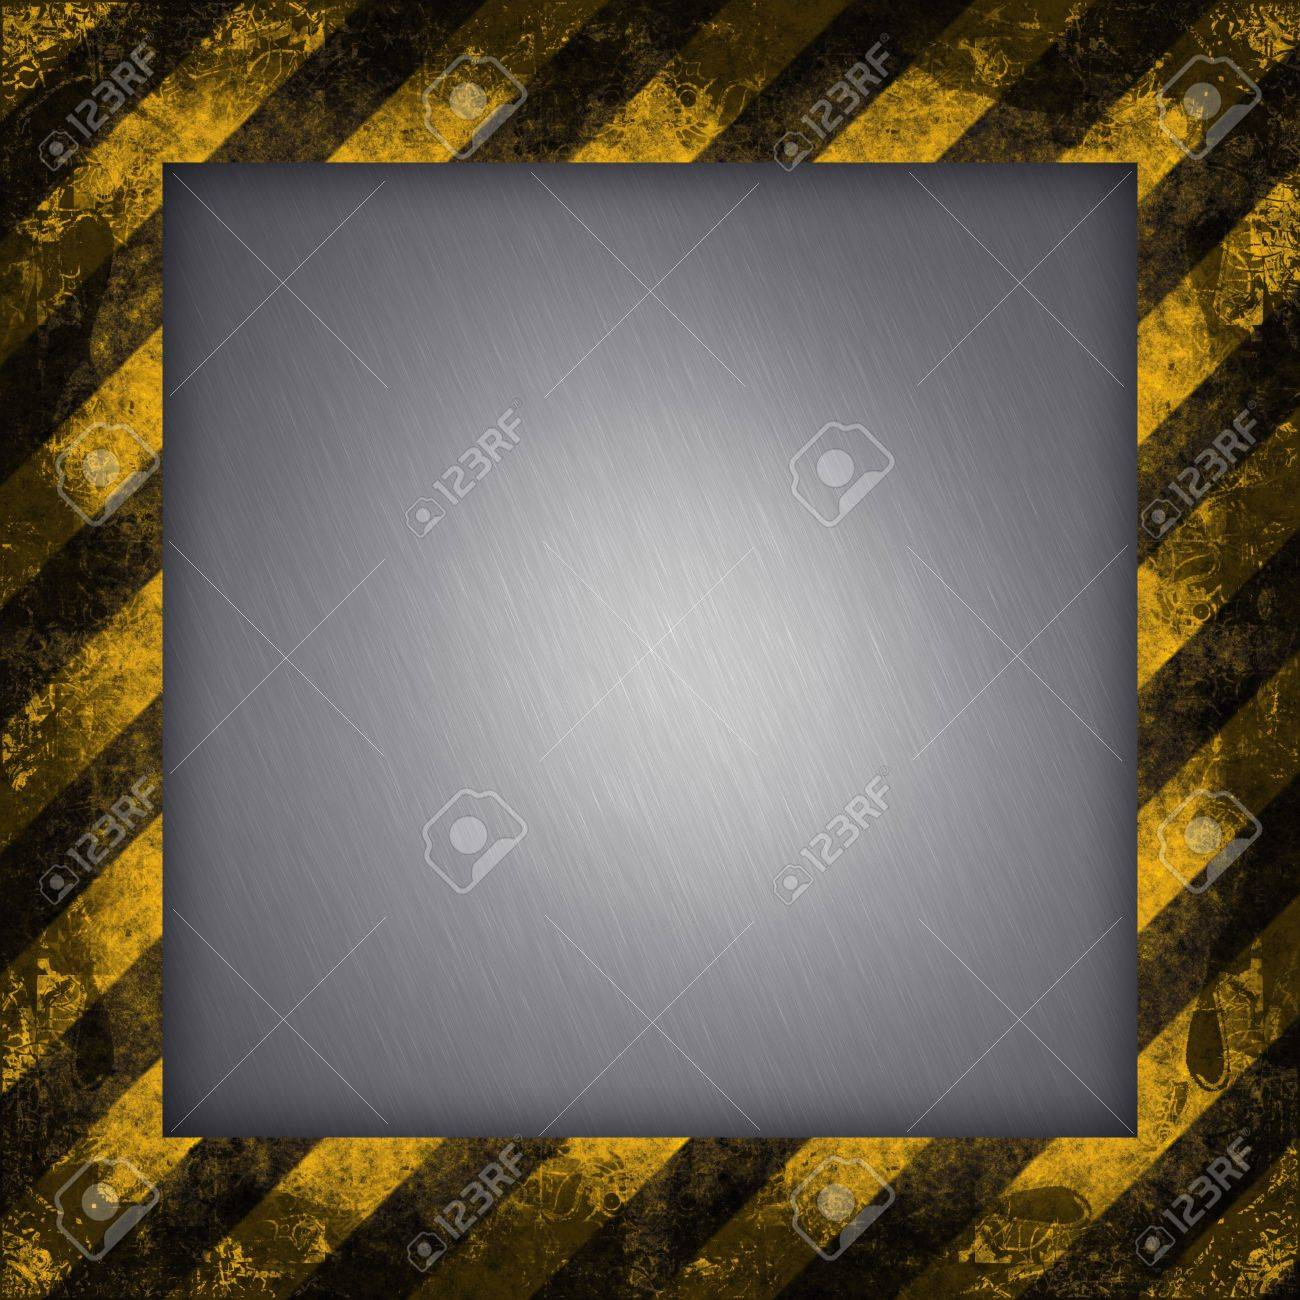 A diagonal hazard stripes border.  The inner part of the frame is brushed aluminum. Stock Photo - 3174435